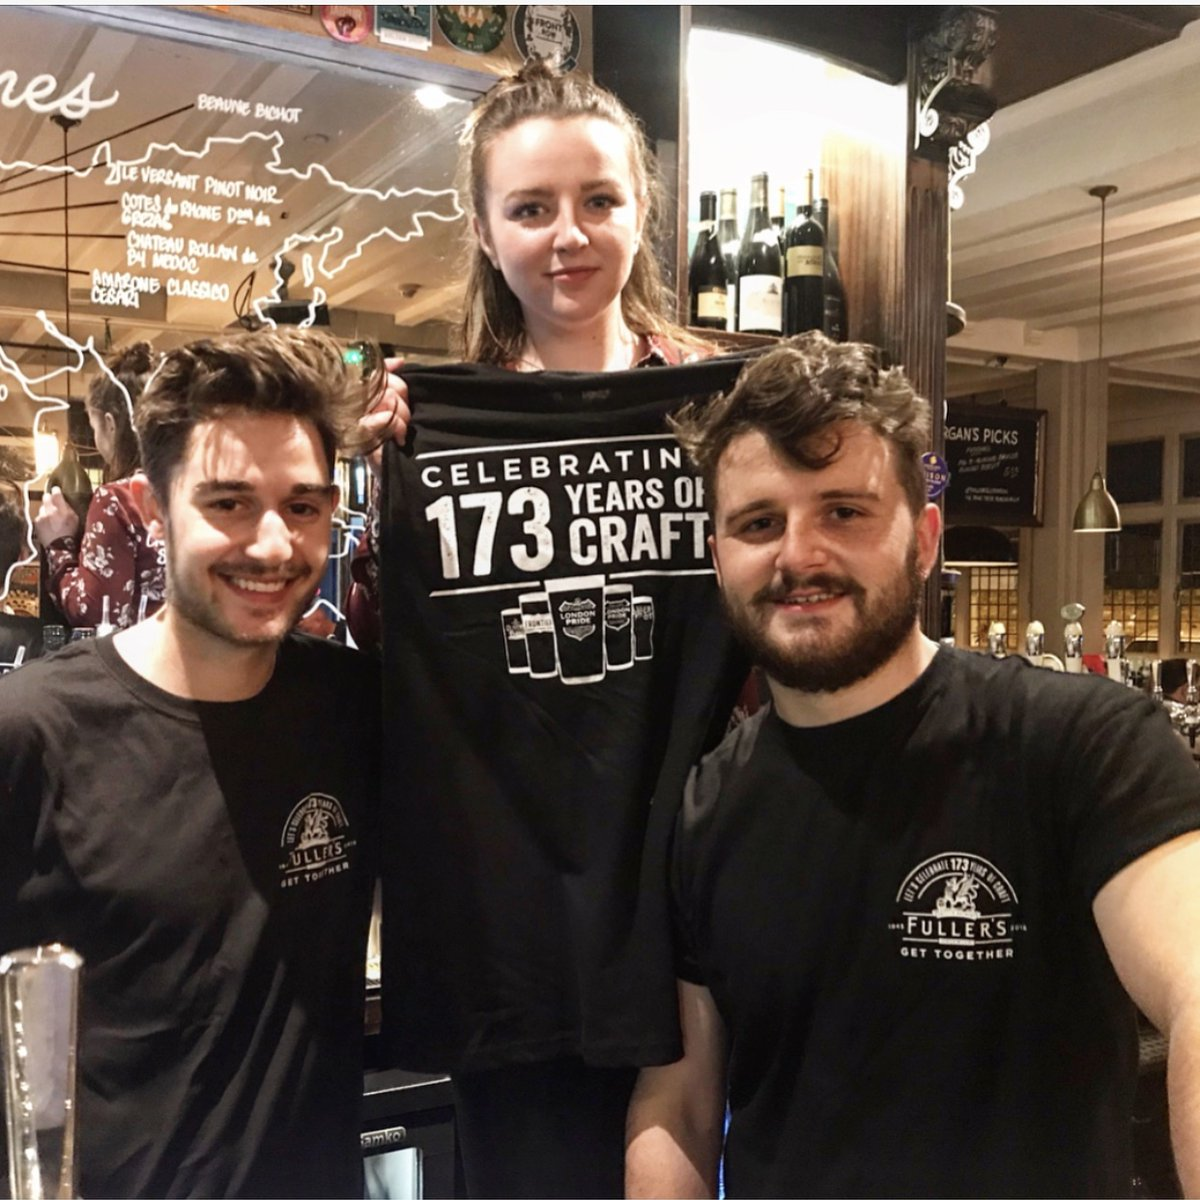 Team members from The Plough in Ealing wear their Fuller's 173 years of craft t-shirts for the Get Together.